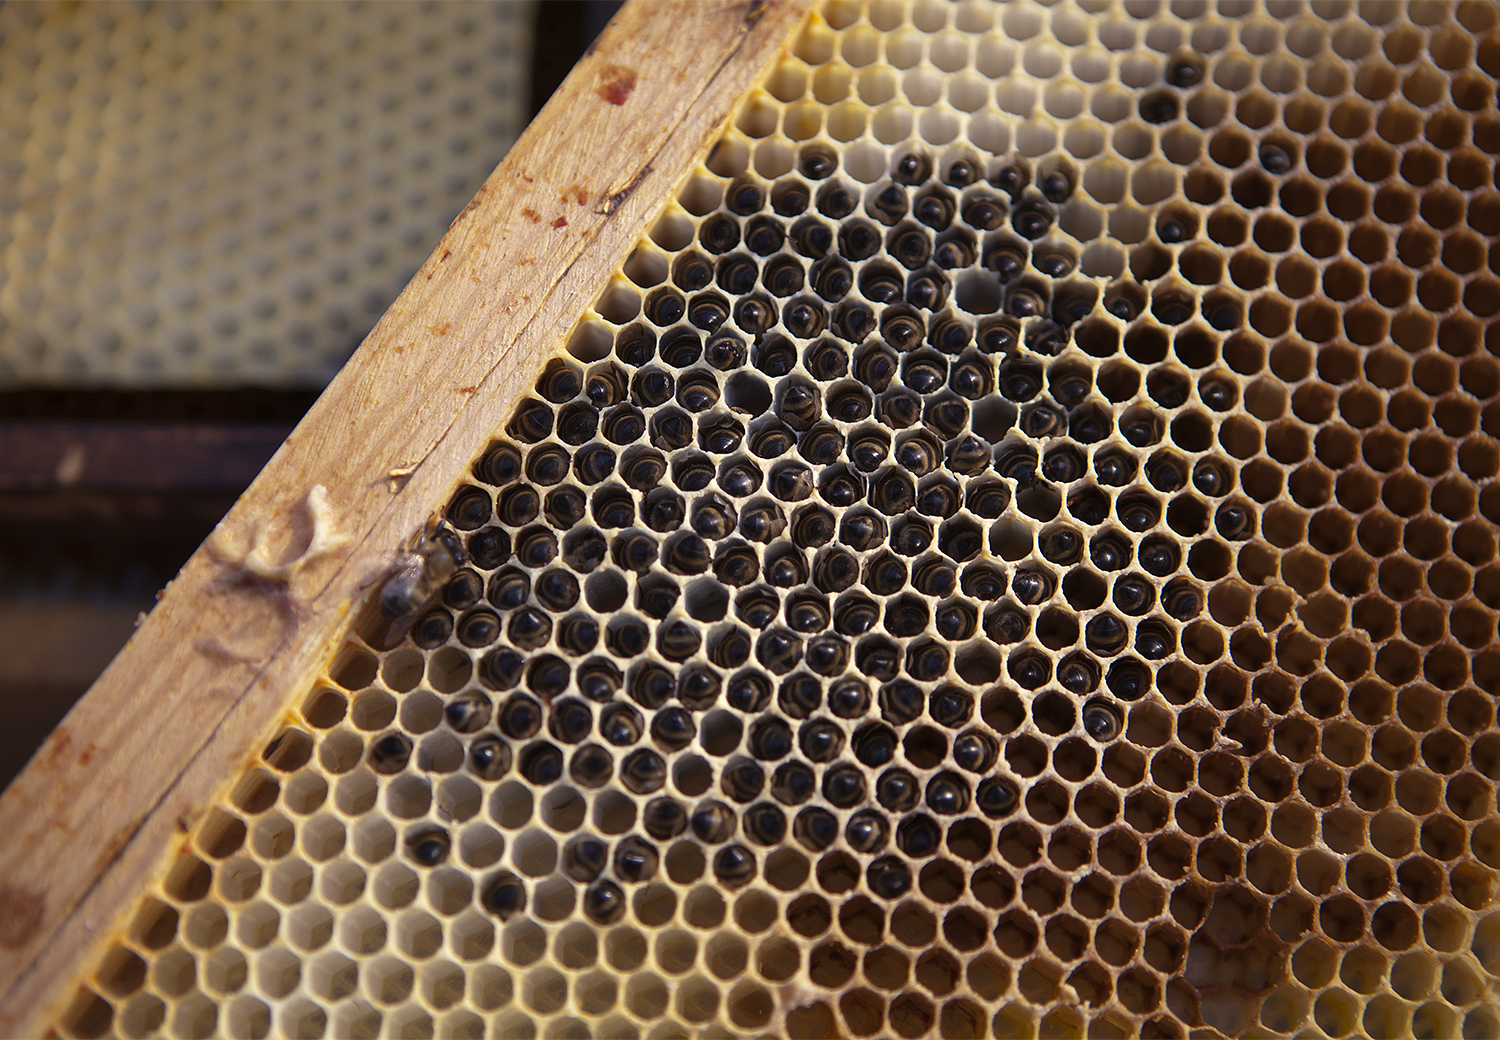 Renee Ricciardi Vivum ex Vivo Biogenesis 12 Bee Honey Comb.jpg